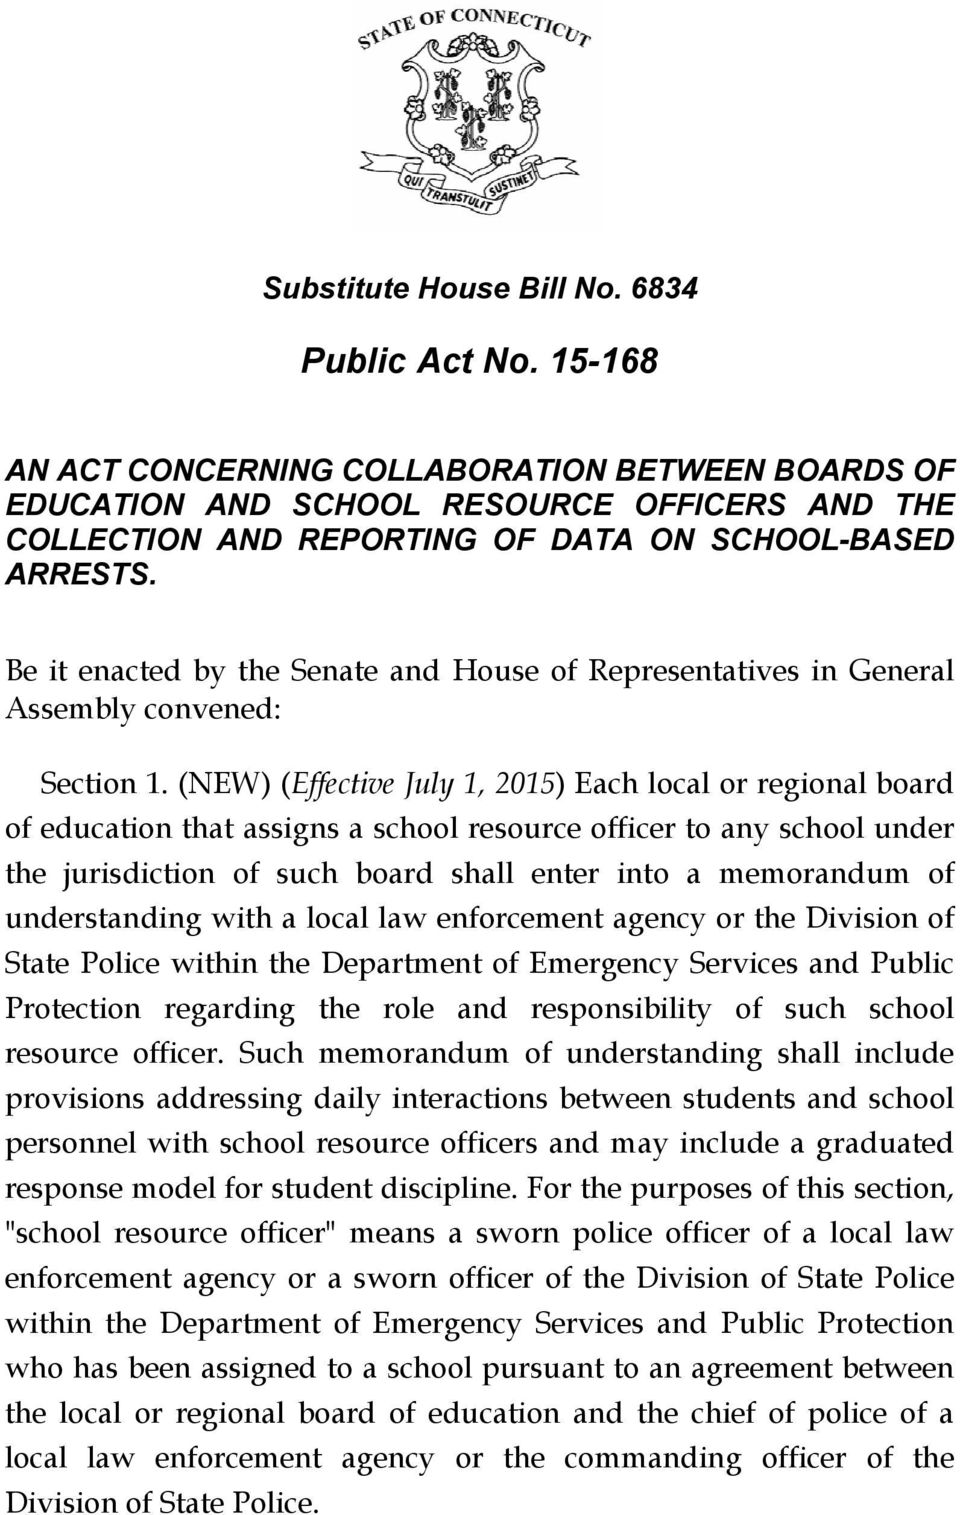 (NEW) (Effective July 1, 2015) Each local or regional board of education that assigns a school resource officer to any school under the jurisdiction of such board shall enter into a memorandum of